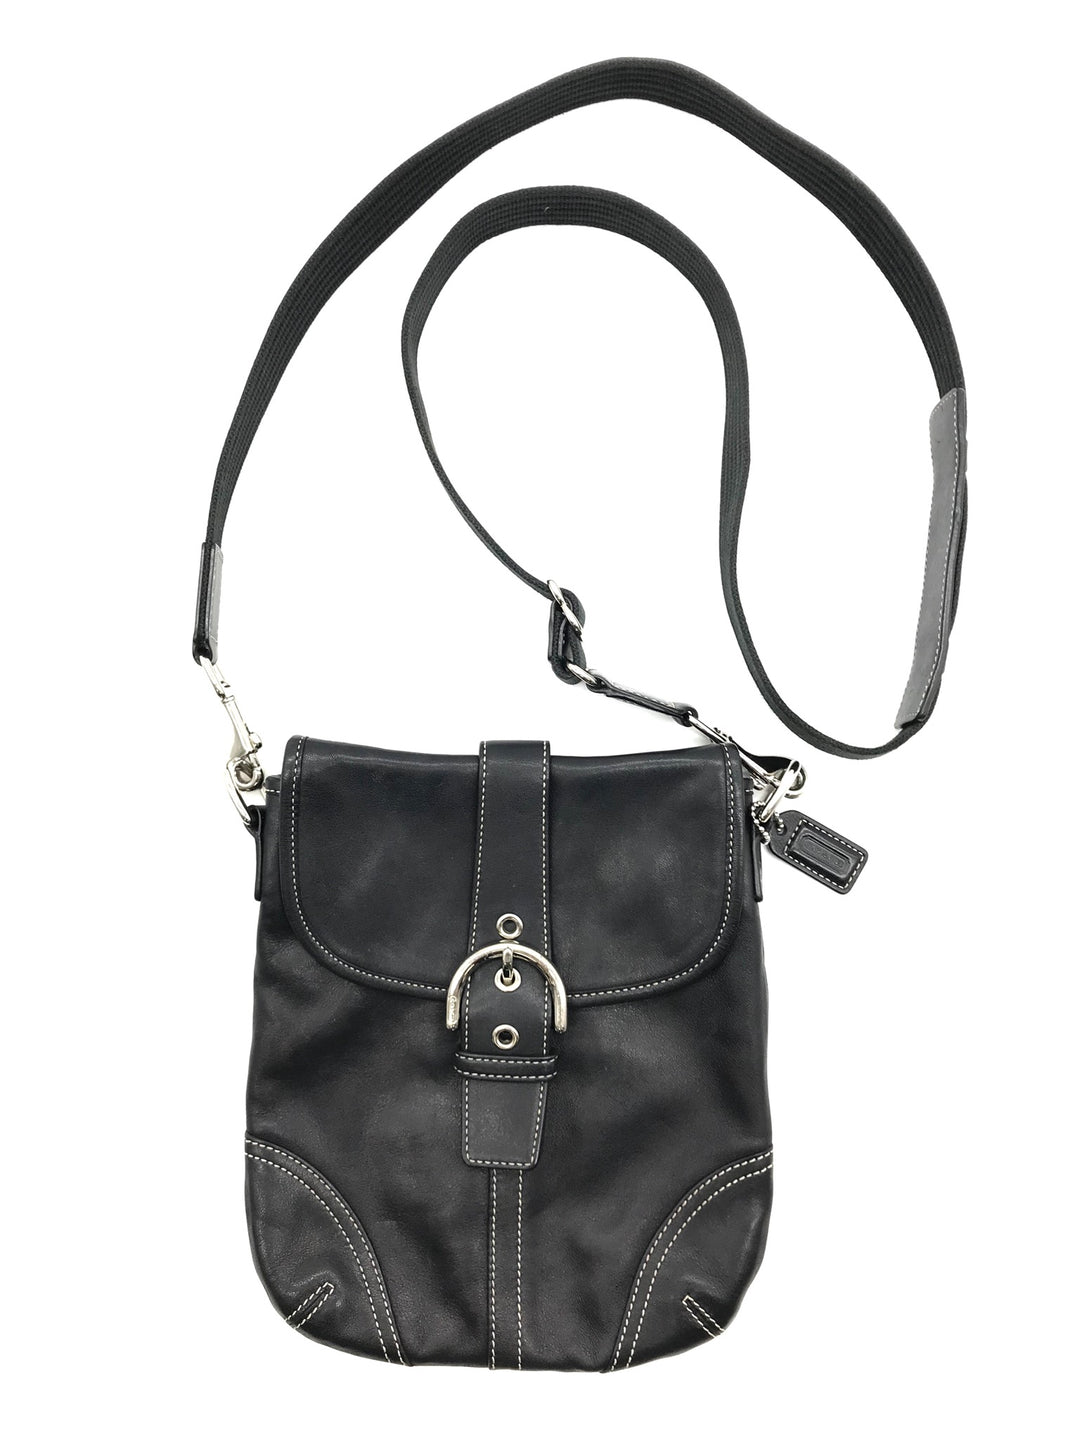 Primary Photo - BRAND: COACH <BR>STYLE: HANDBAG DESIGNER <BR>COLOR: BLACK <BR>SIZE: SMALL <BR>SKU: 262-26241-42607<BR>GENTLE WEAR - AS IS